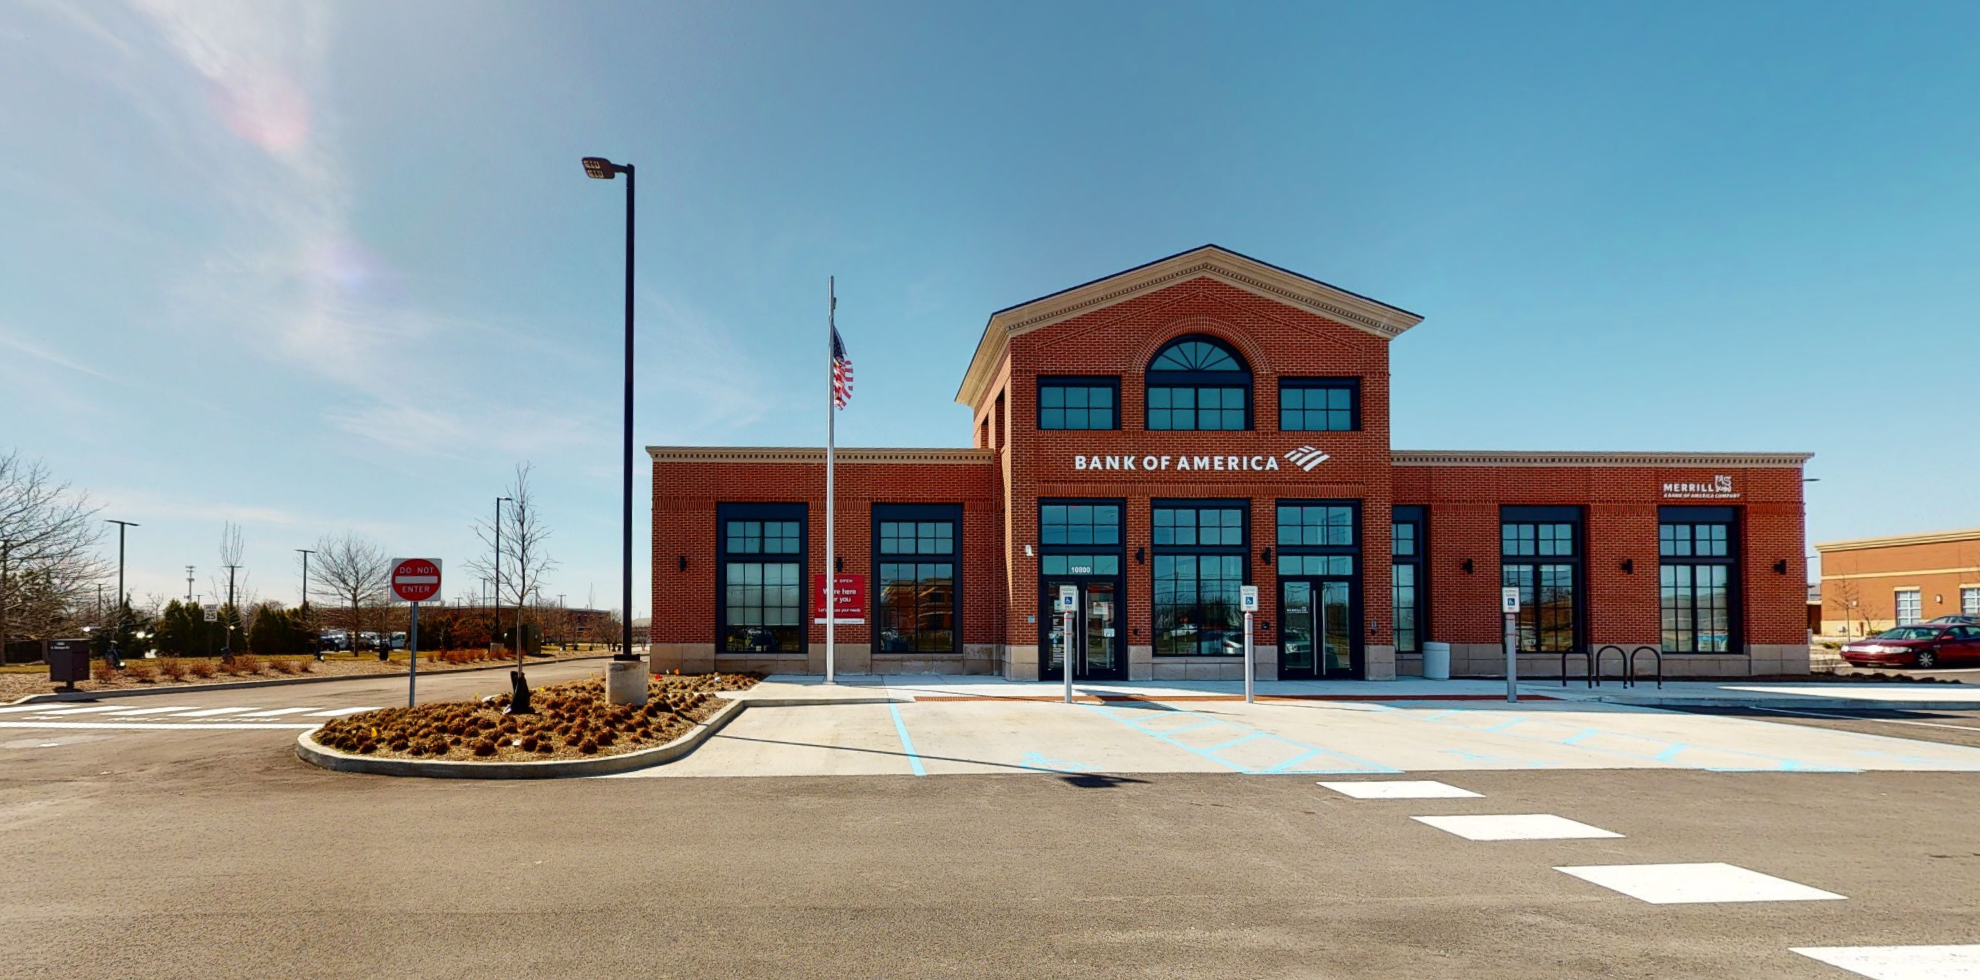 Bank of America financial center with drive-thru ATM | 10800 N Michigan Rd, Zionsville, IN 46077